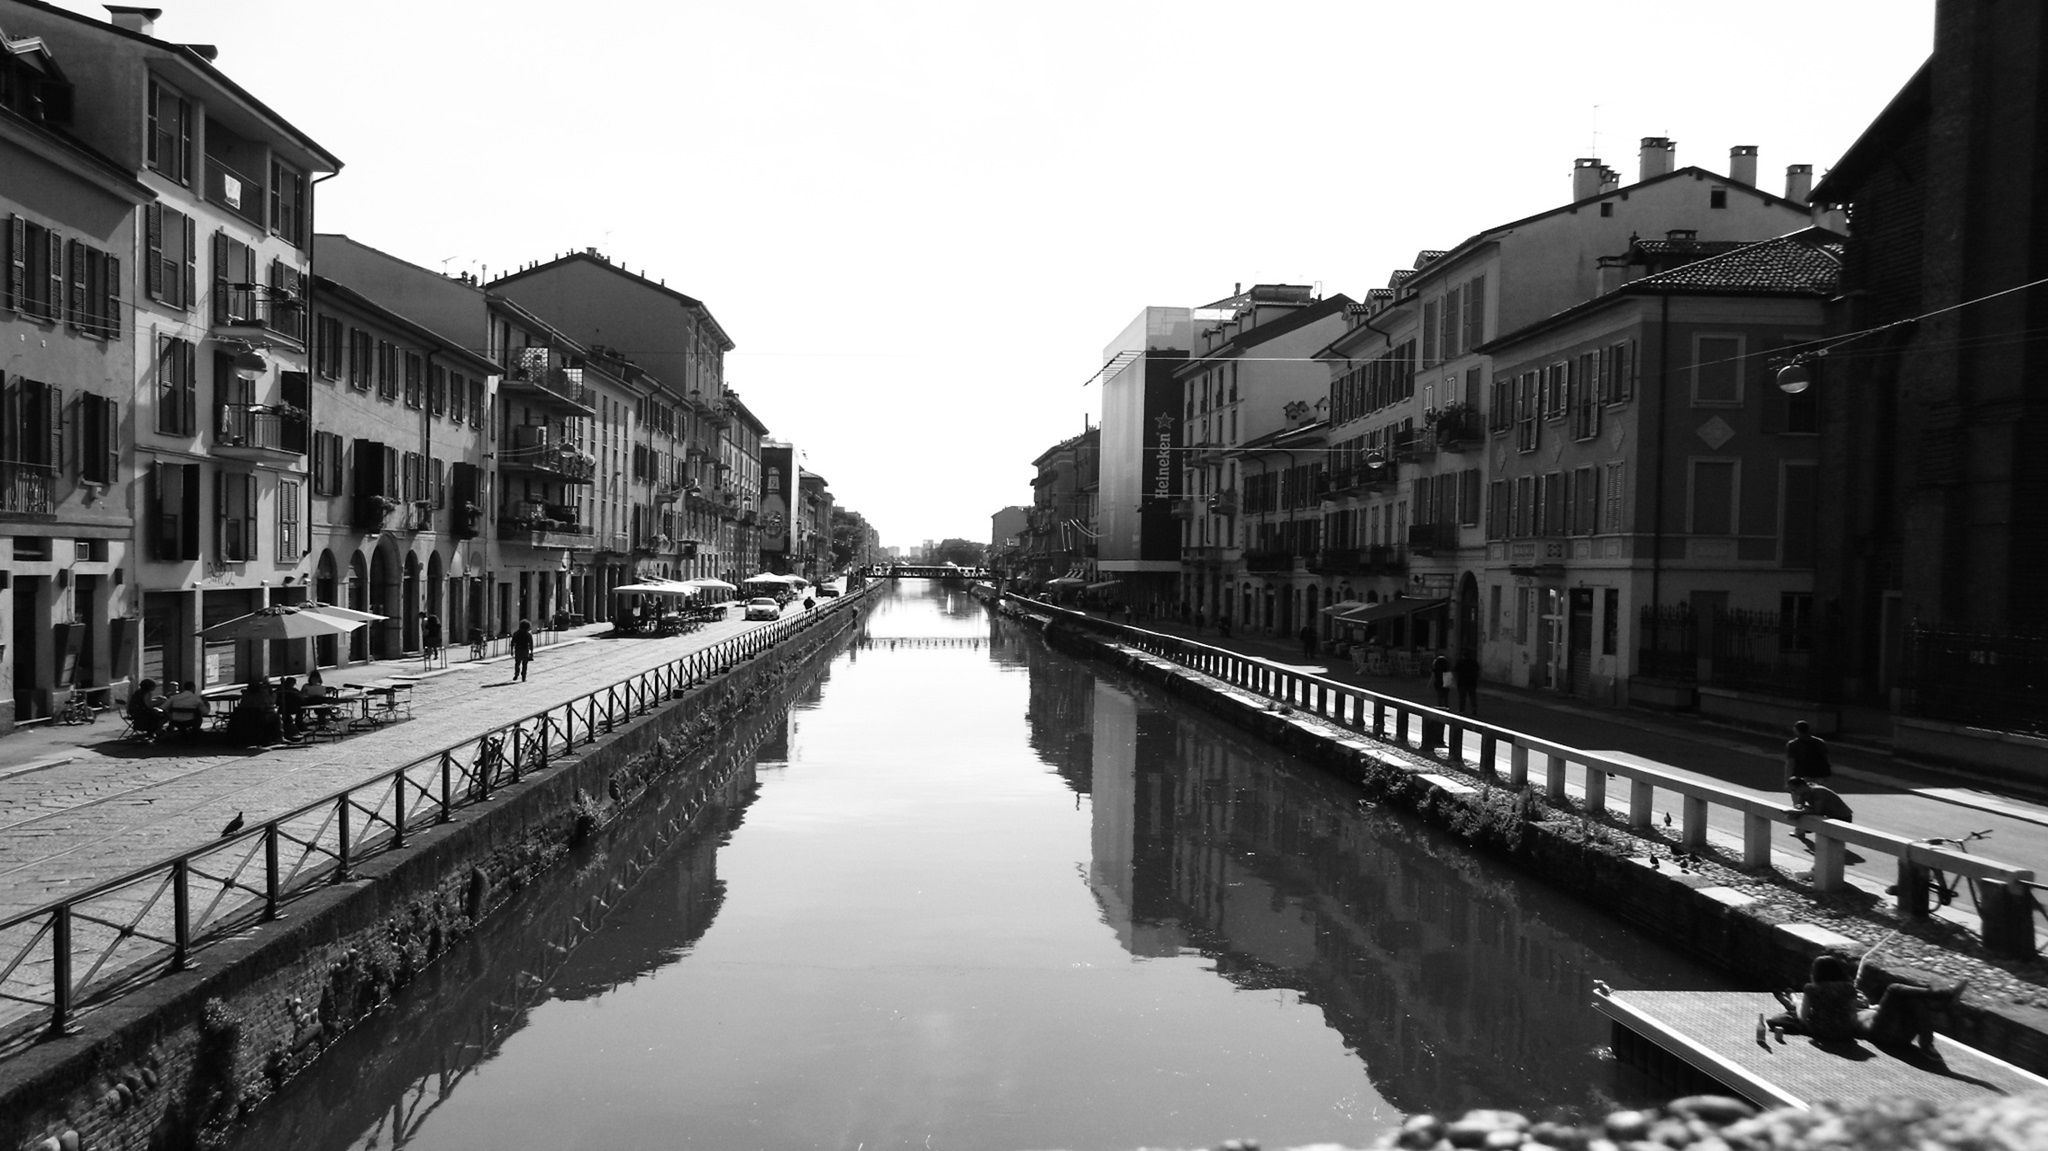 Milan, Italy. Beautiful city. Beautiful landscape. River/Canal through the centre.